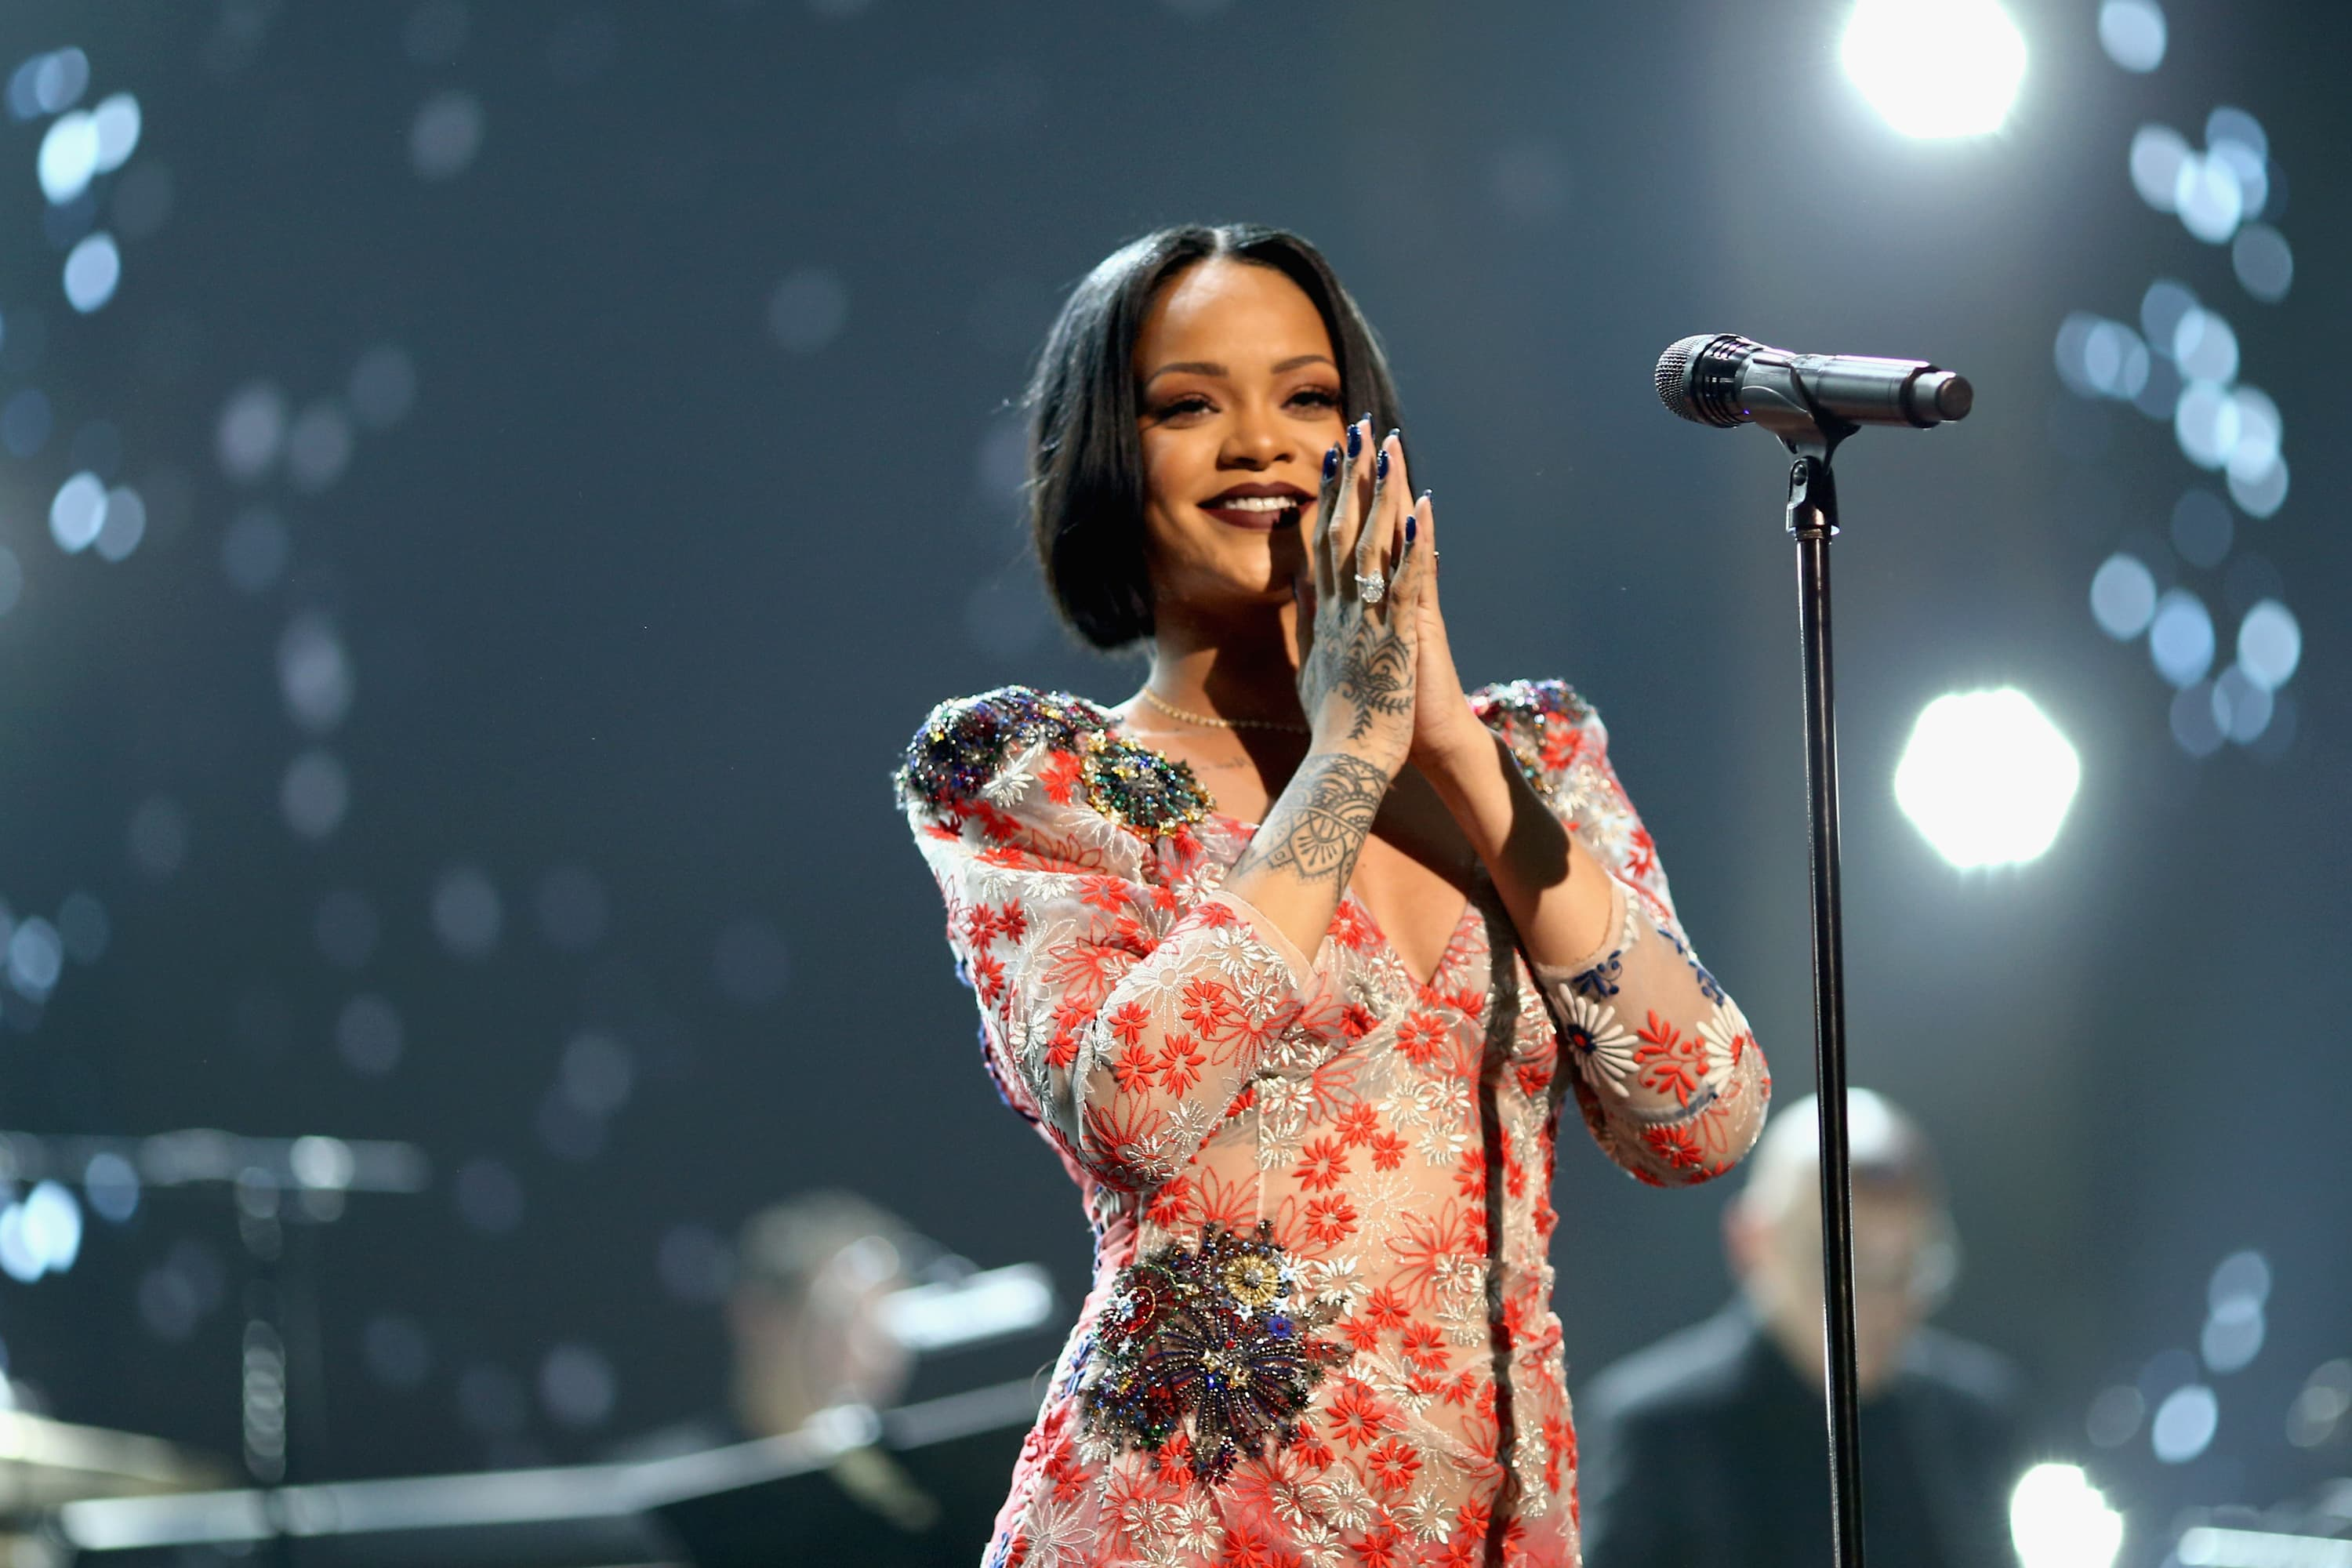 Rihanna: 'I never thought I'd make this much money'—here's what it means to her